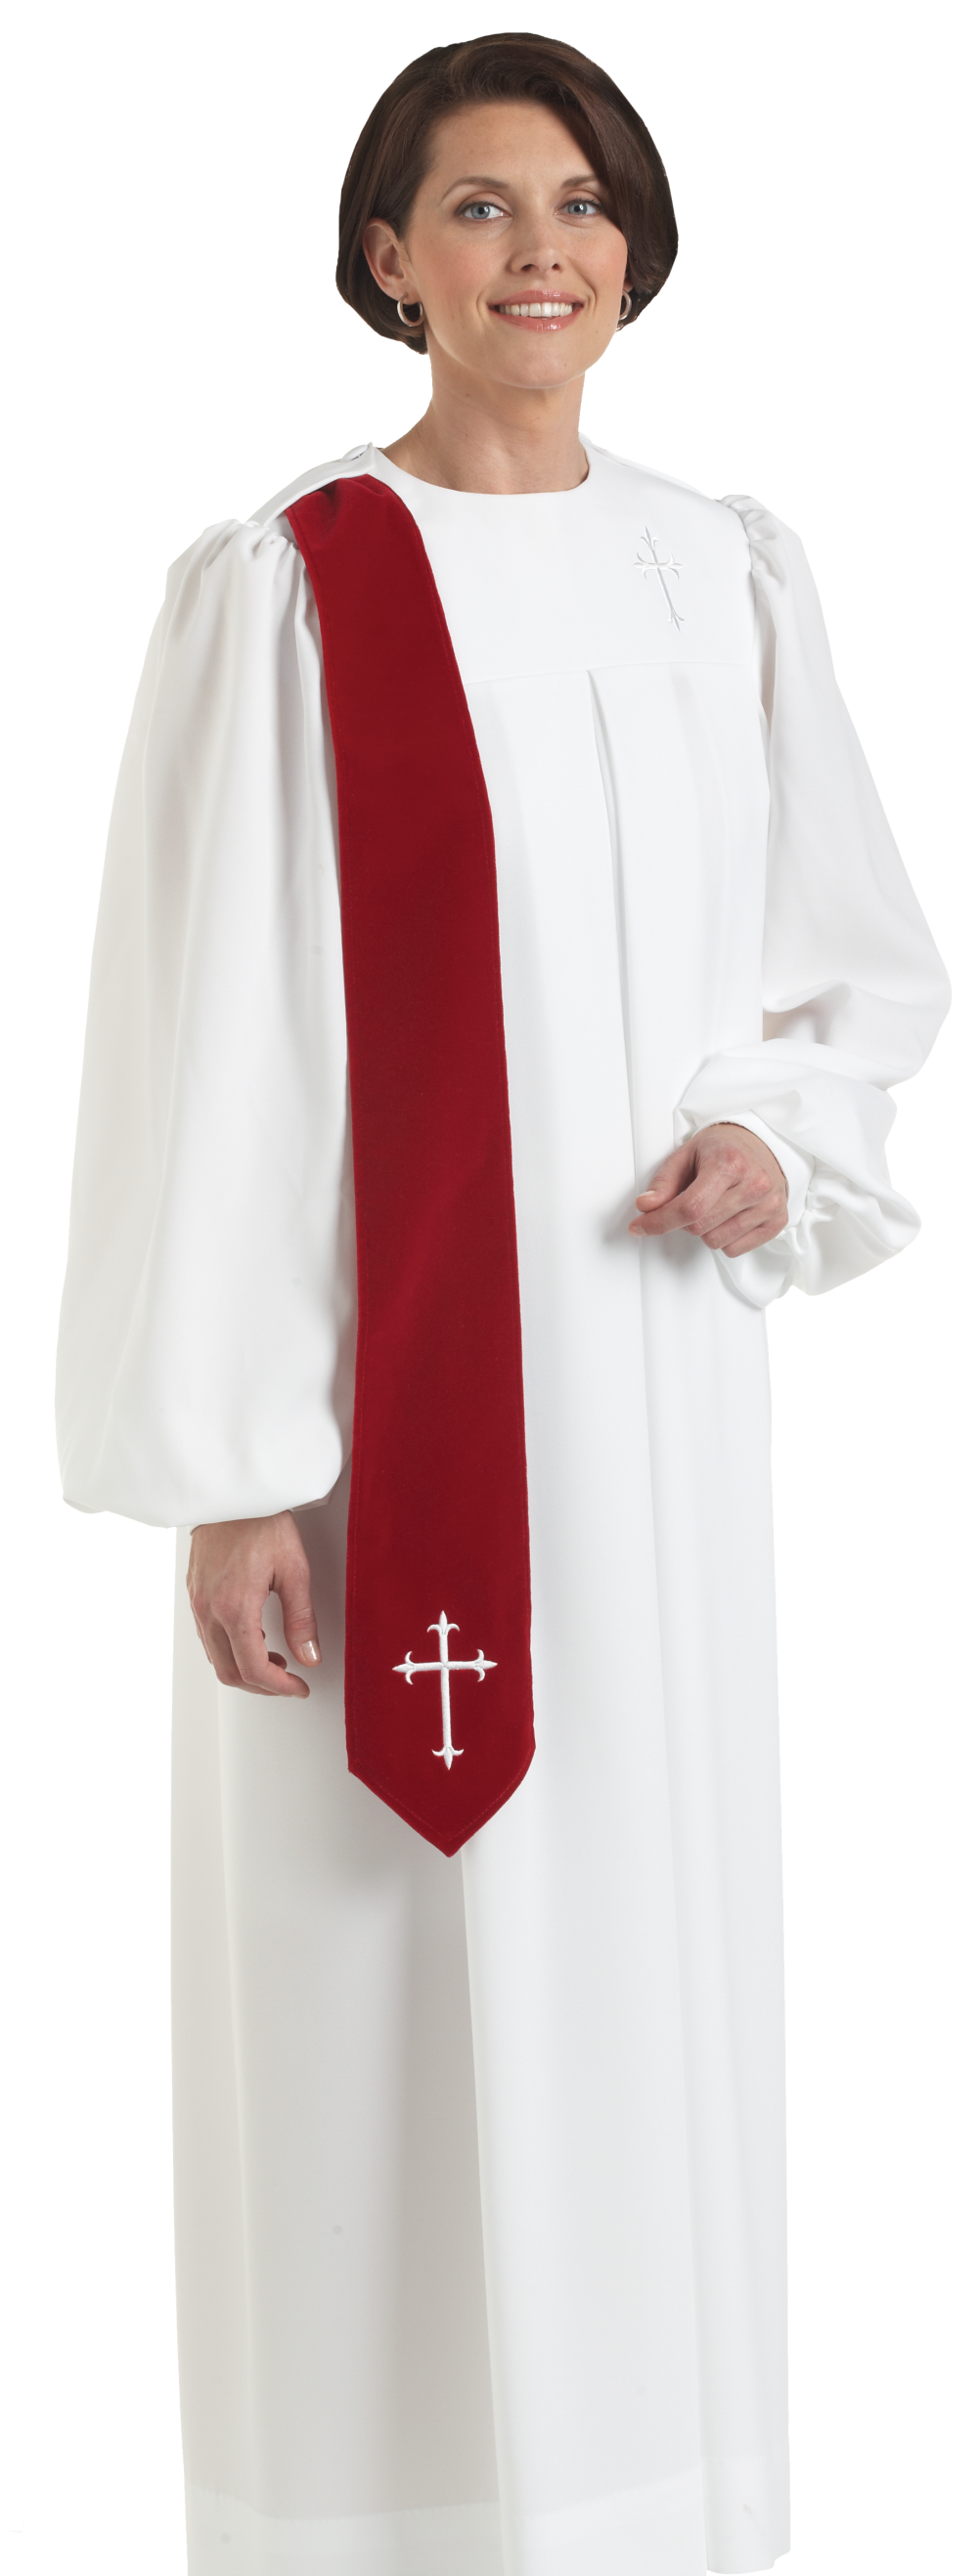 Evangelist womens white clergy robe